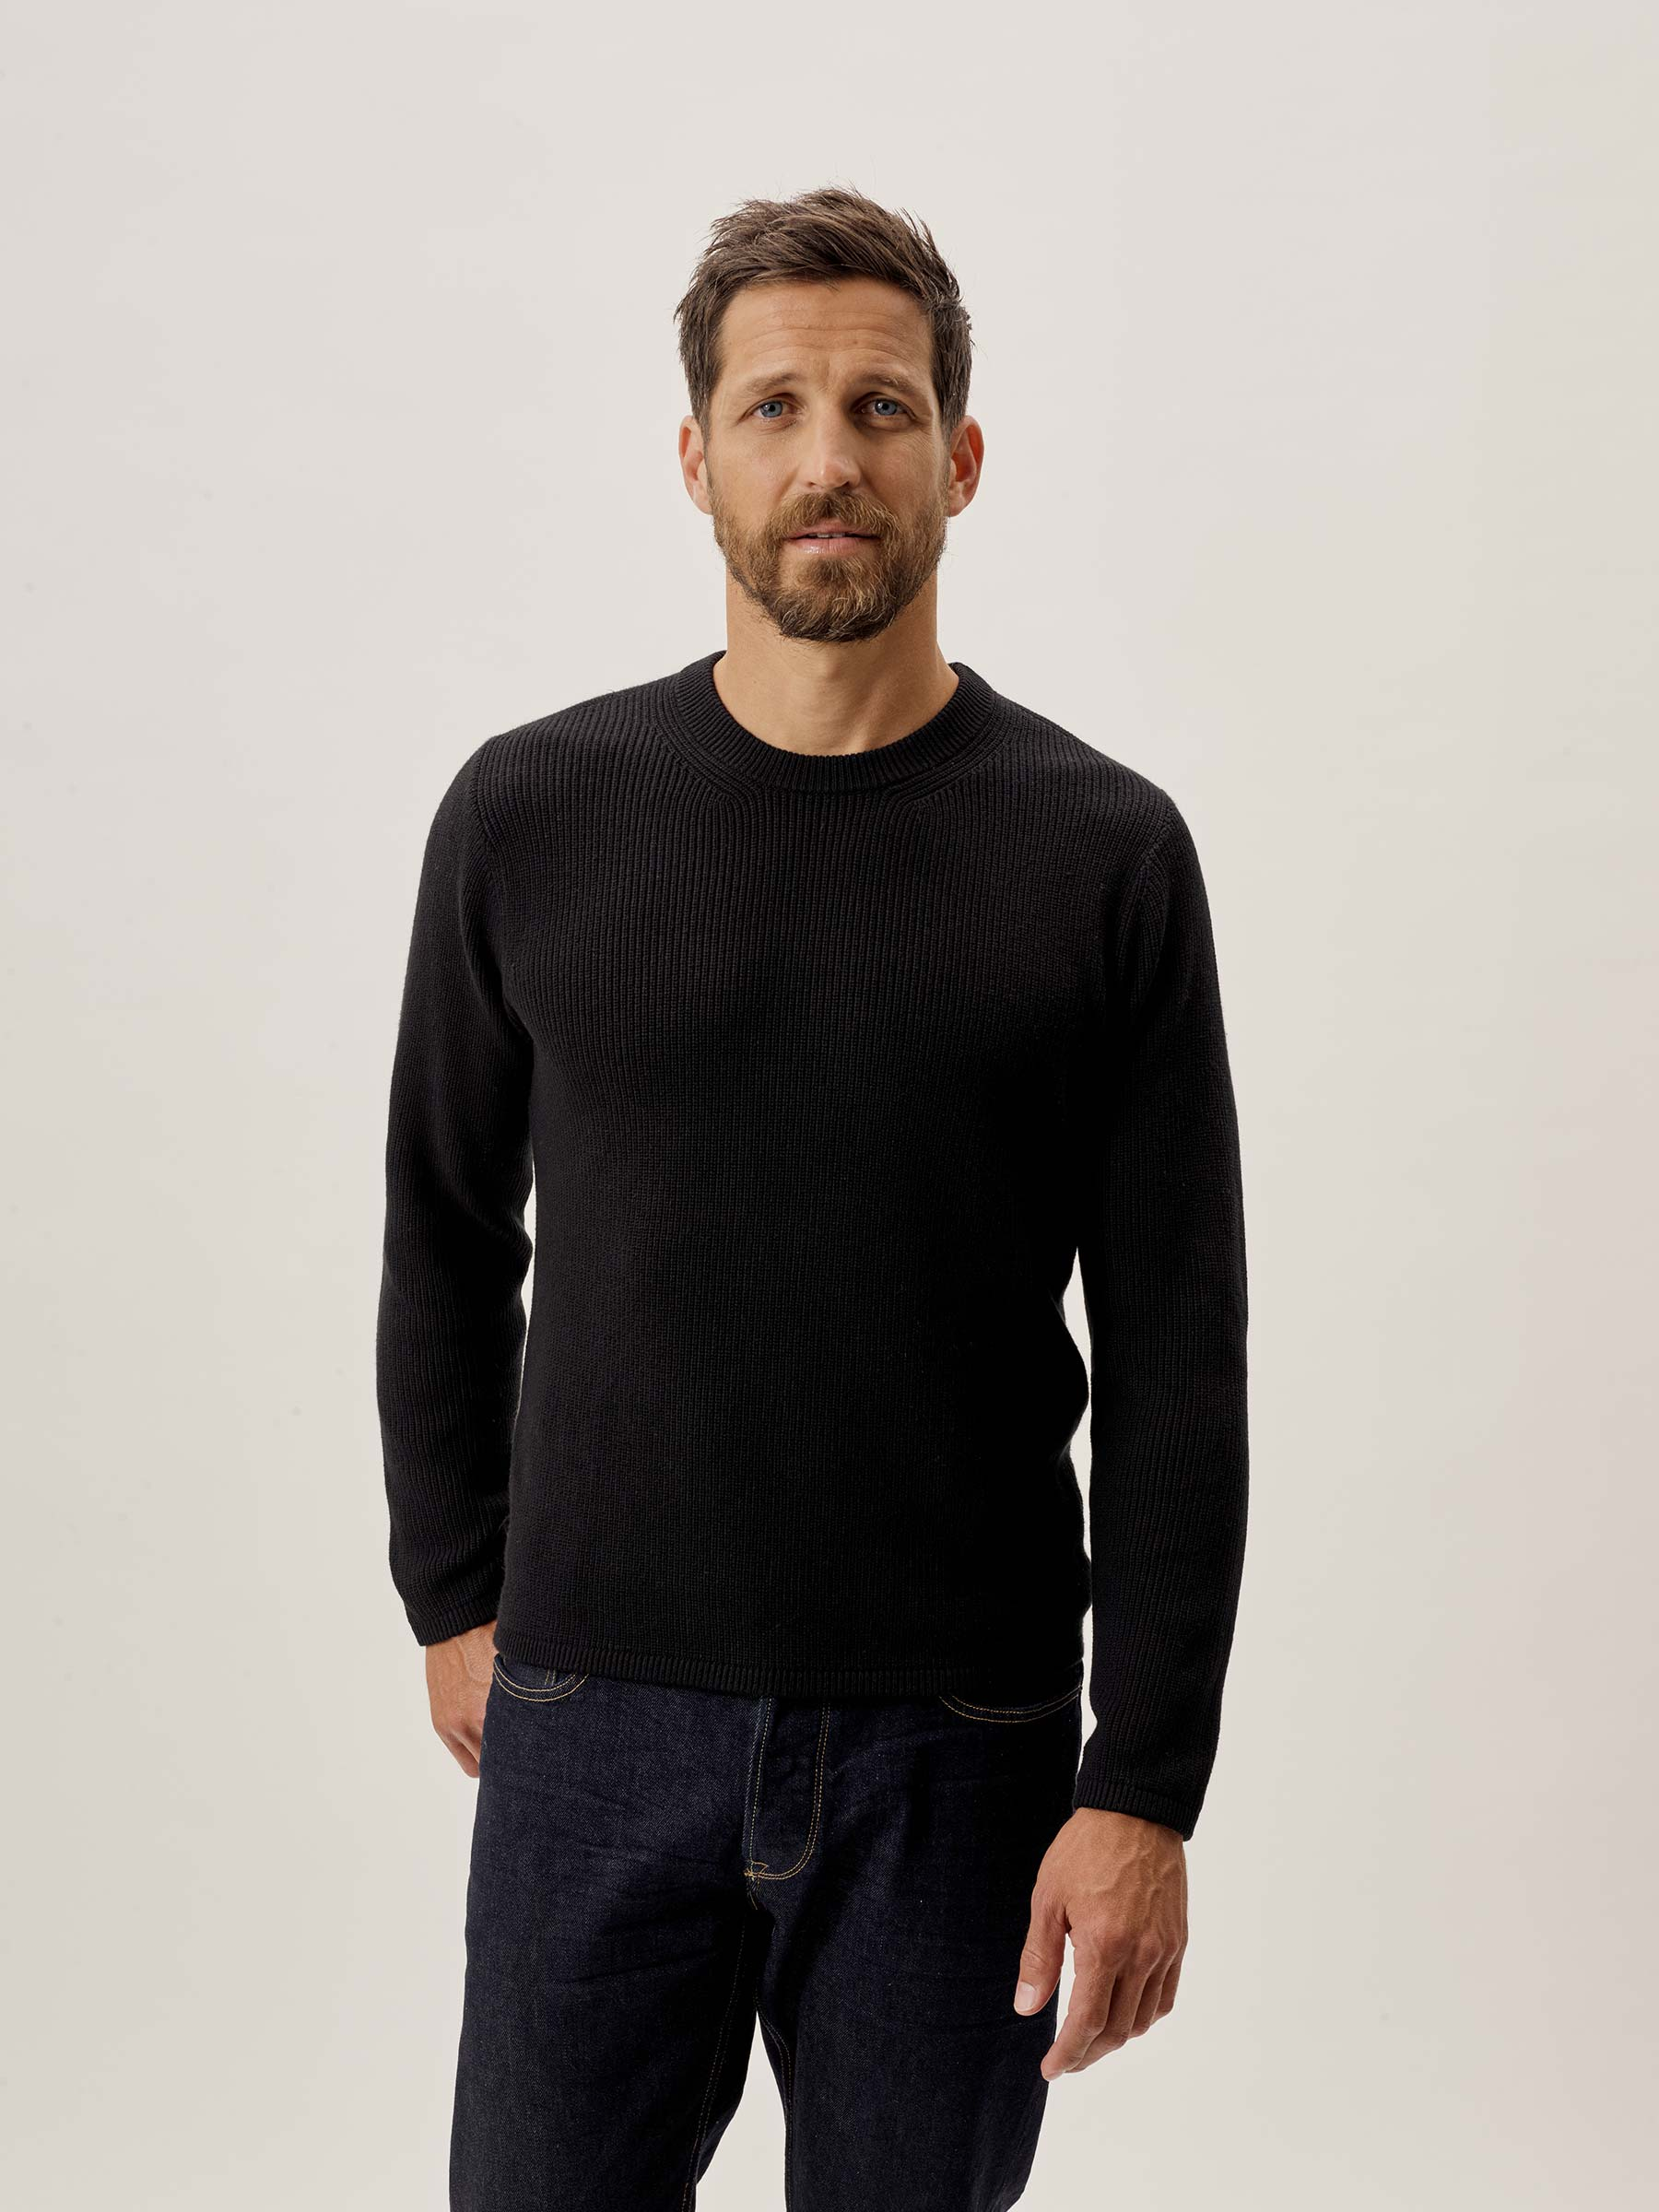 Black Sweater Gift Idea for Him